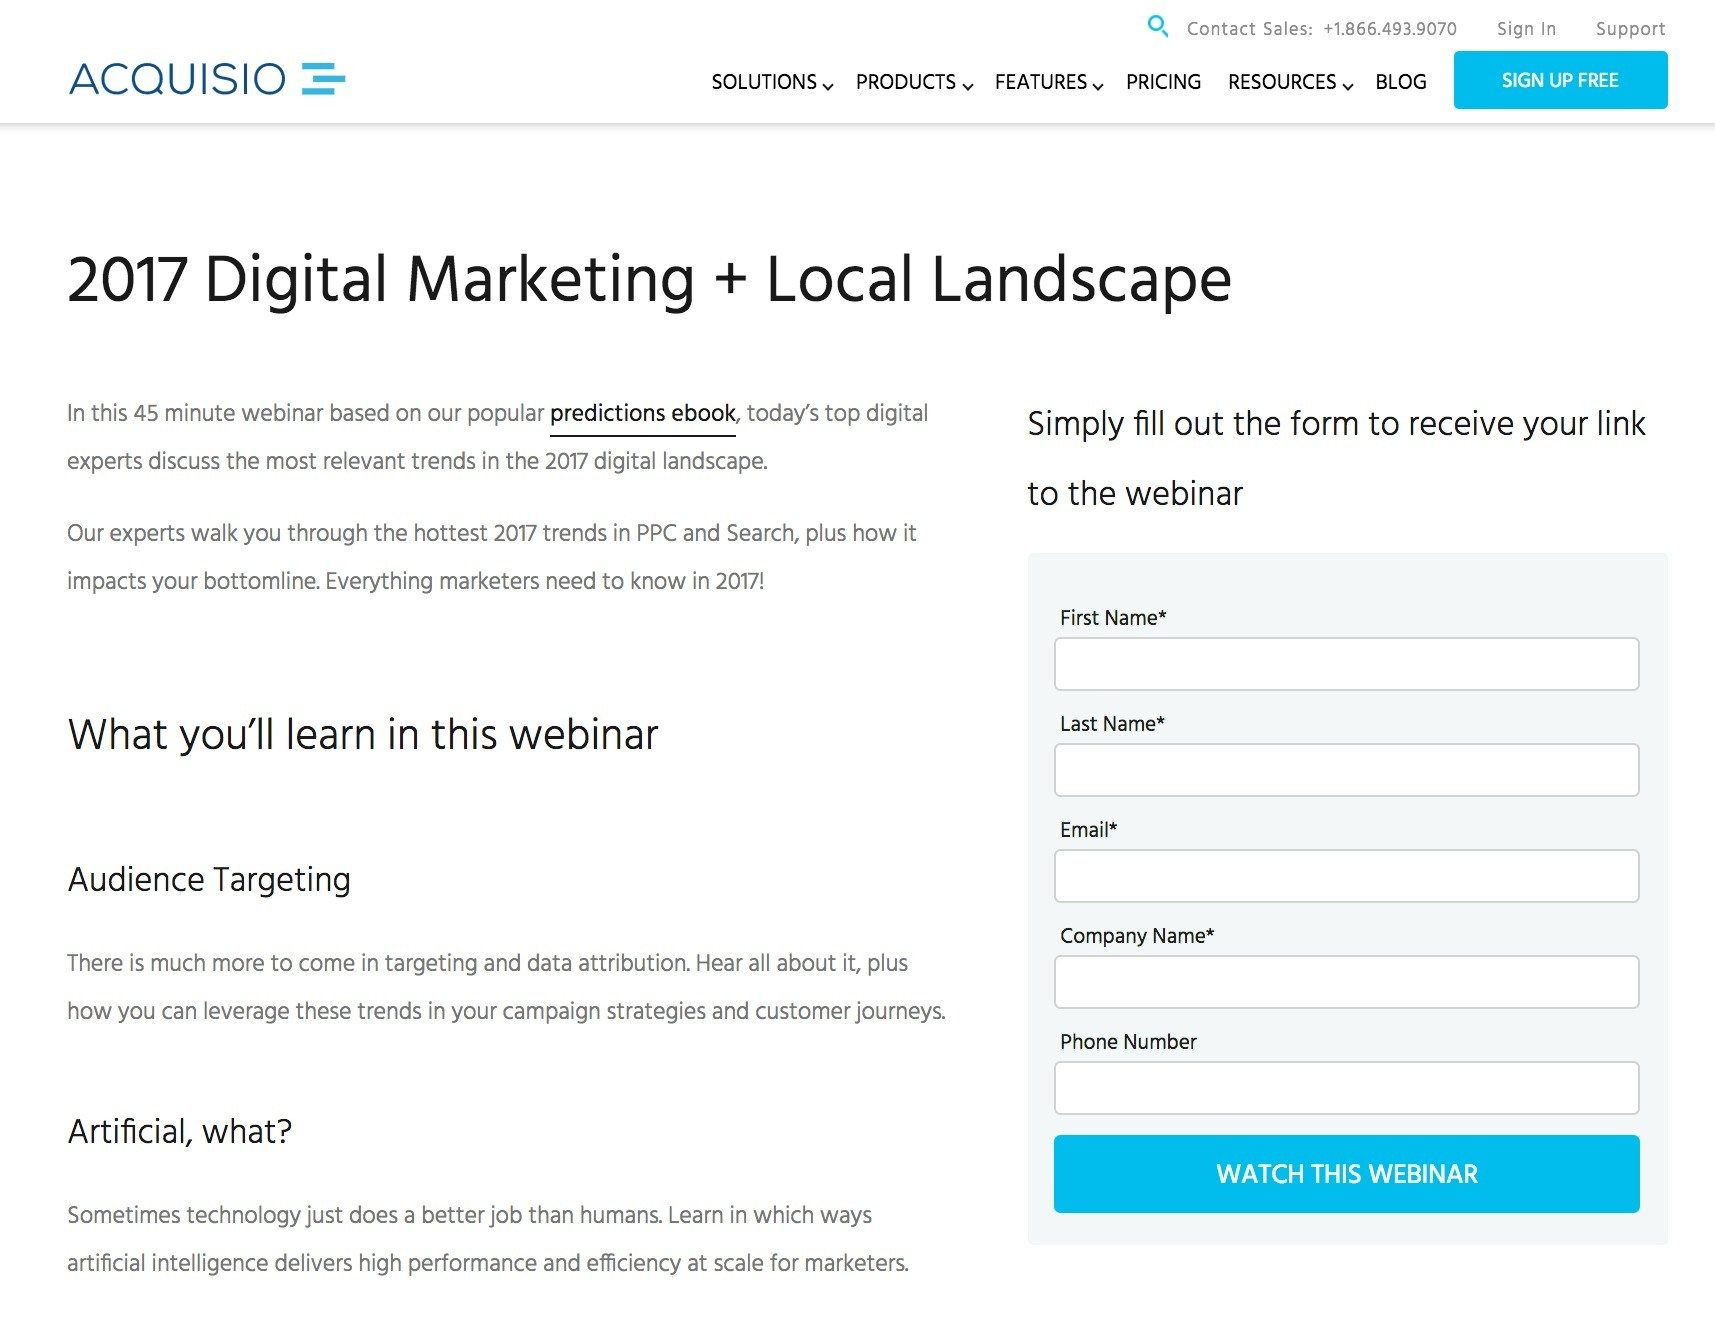 This picture shows marketers how Acquisio uses an Instagram landing page to promote their digital marketing webinar.